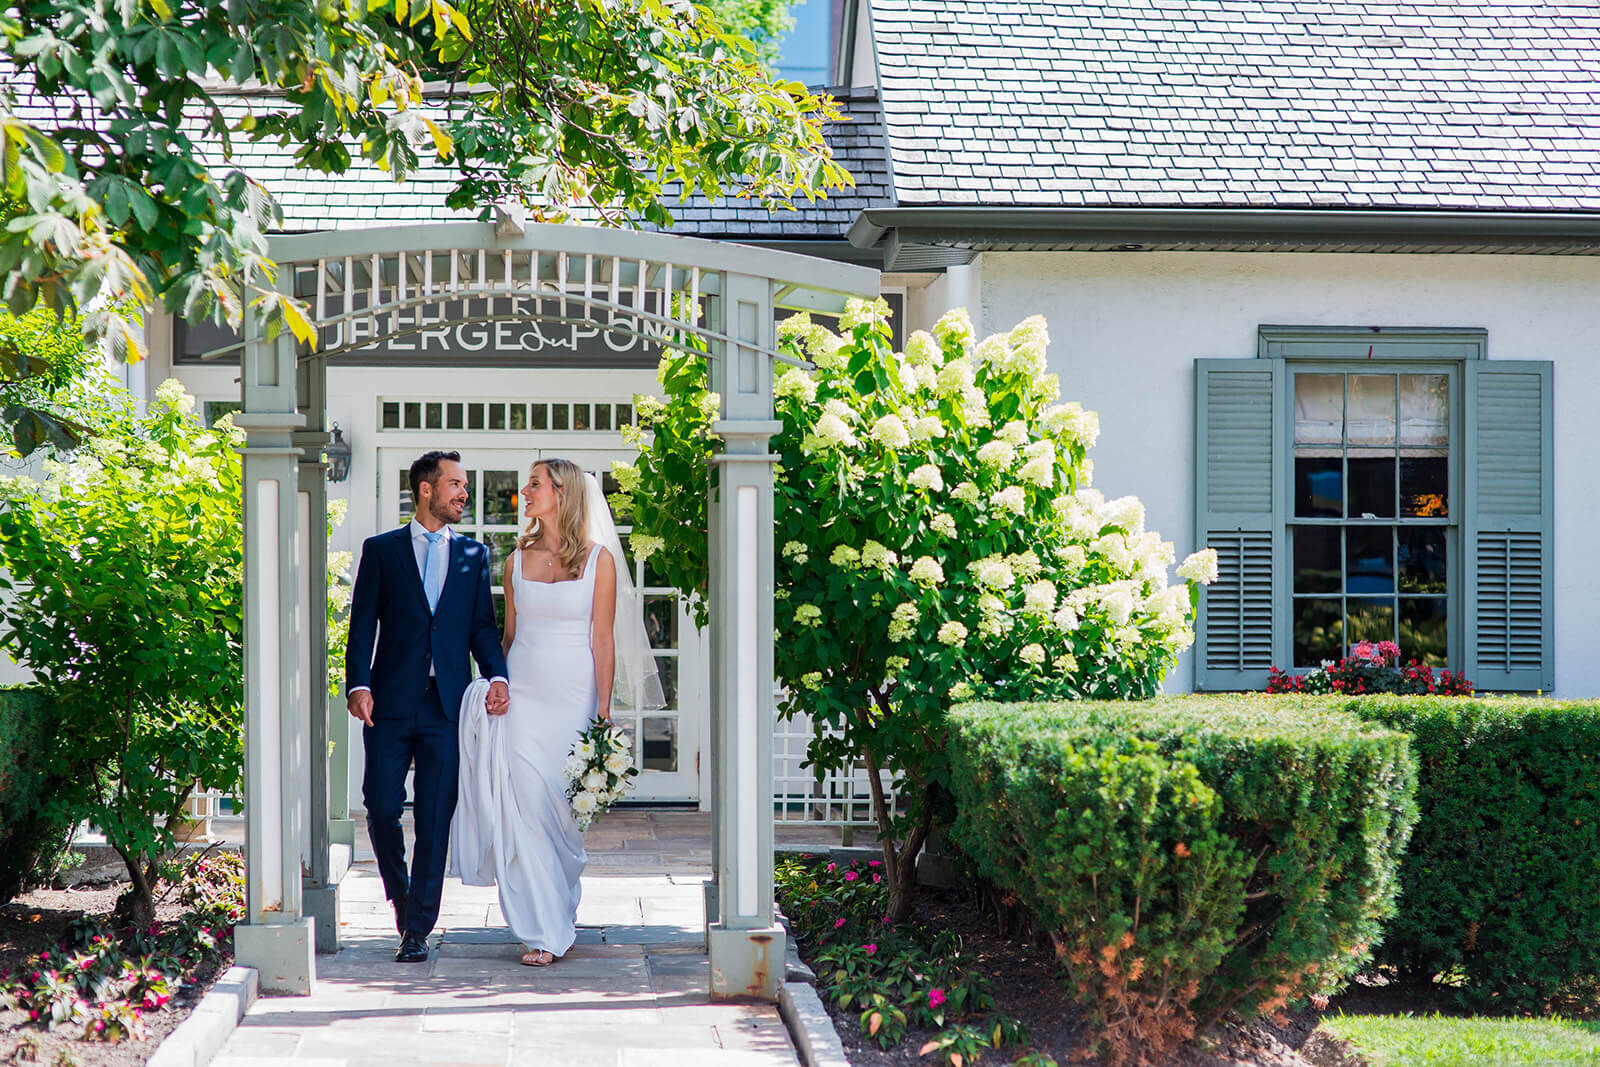 Intimate outdoor wedding at Auberge du Pommier in Toronto